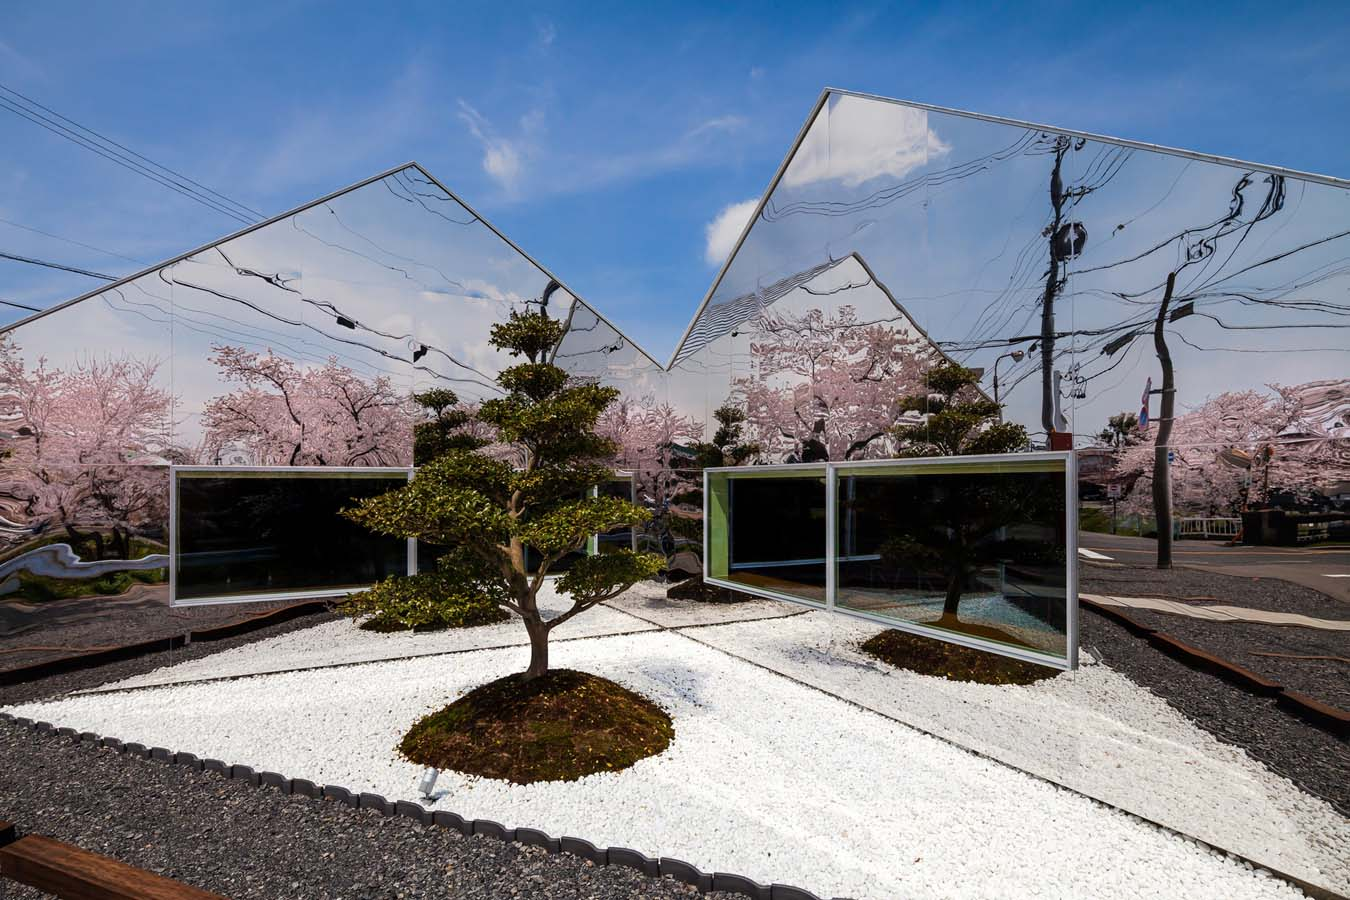 Mirrors Cafe, Japan